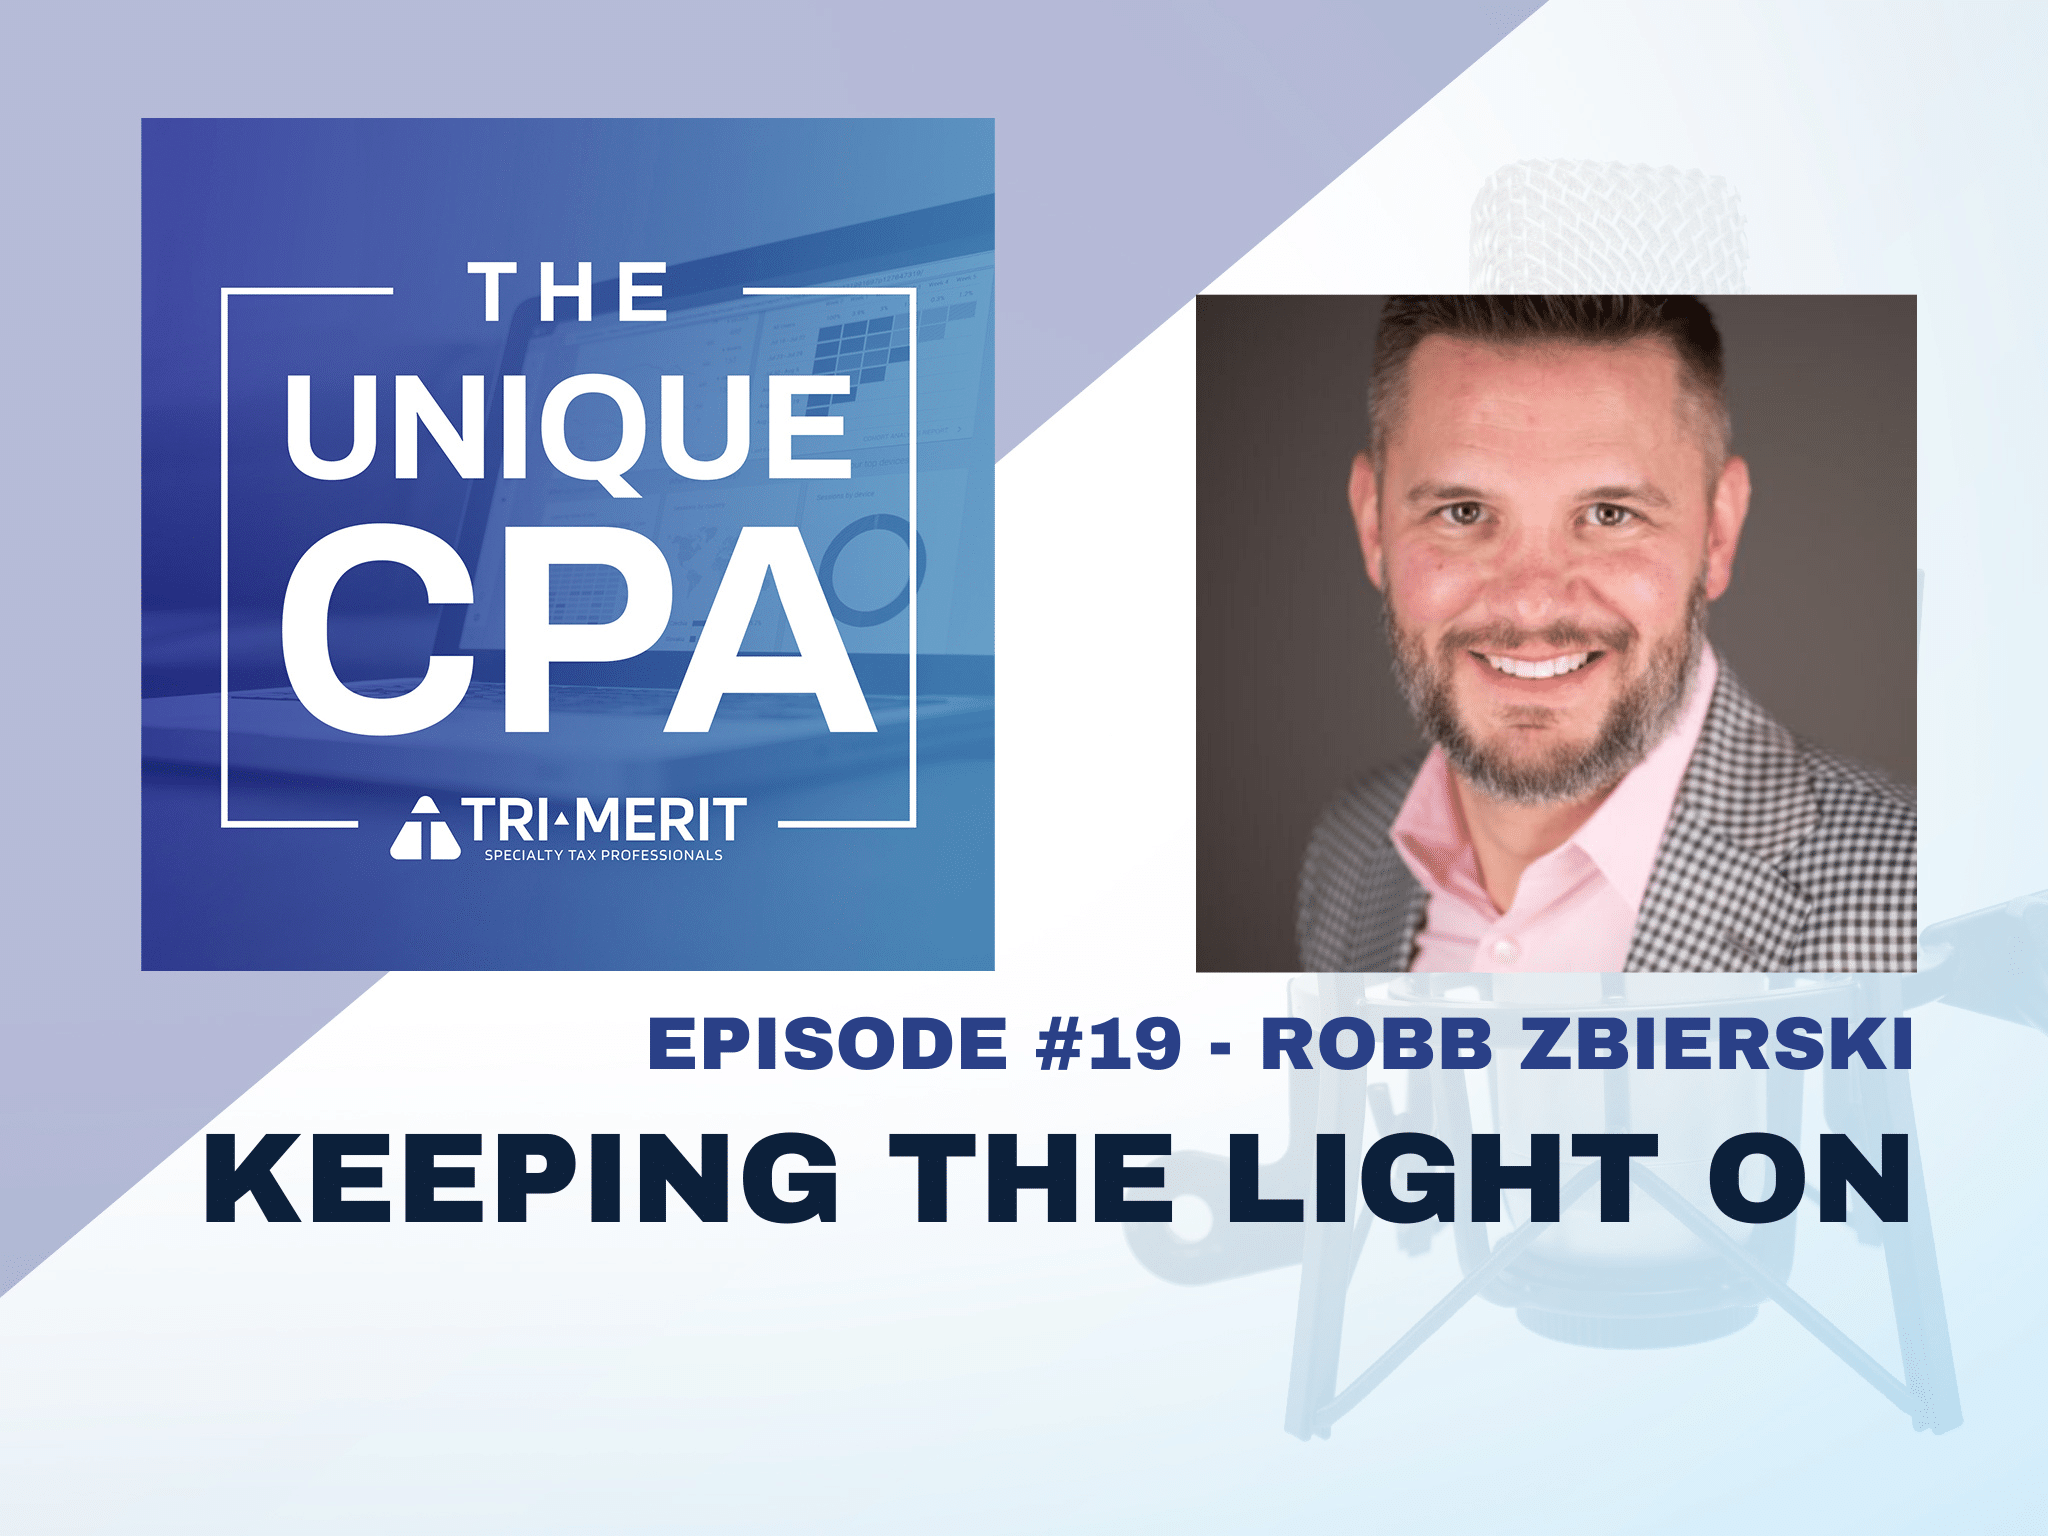 The Unique CPA Feature Image Ep 19 Robb Zbeirski - Keeping the Light On - Tri-Merit